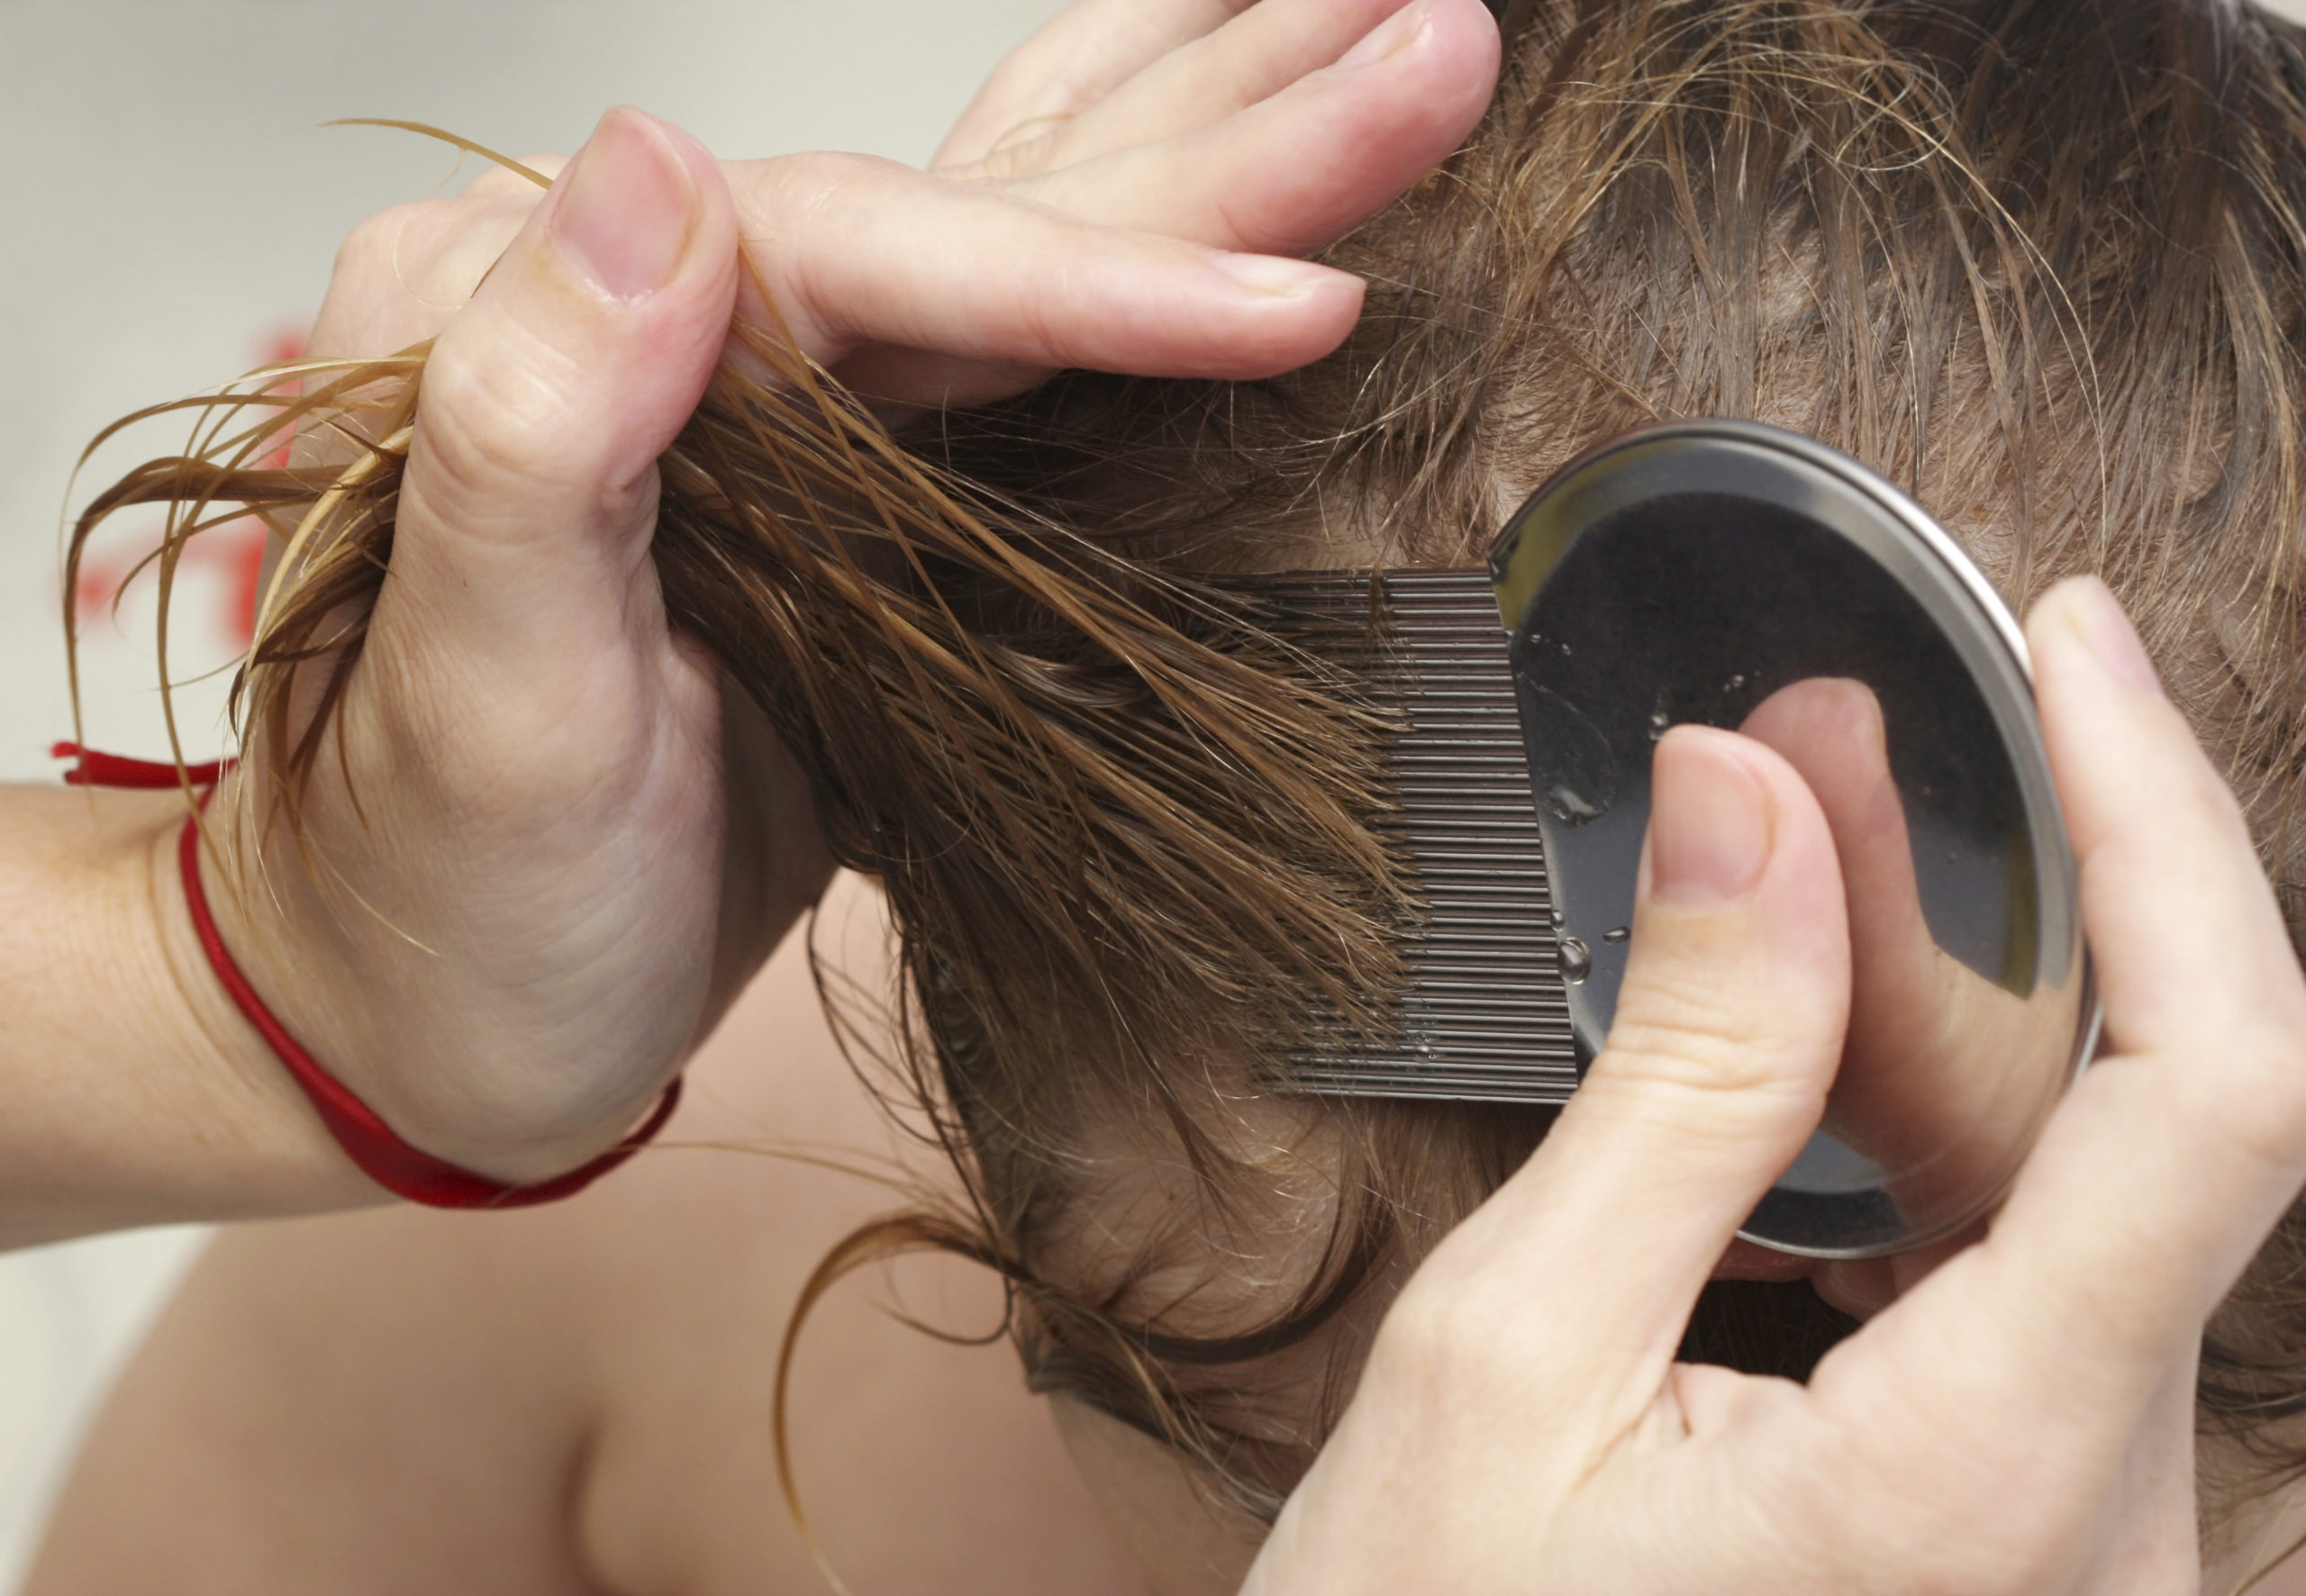 Your Hair DNA Influnces Your Strands But You Can DeaccelerateThe Process